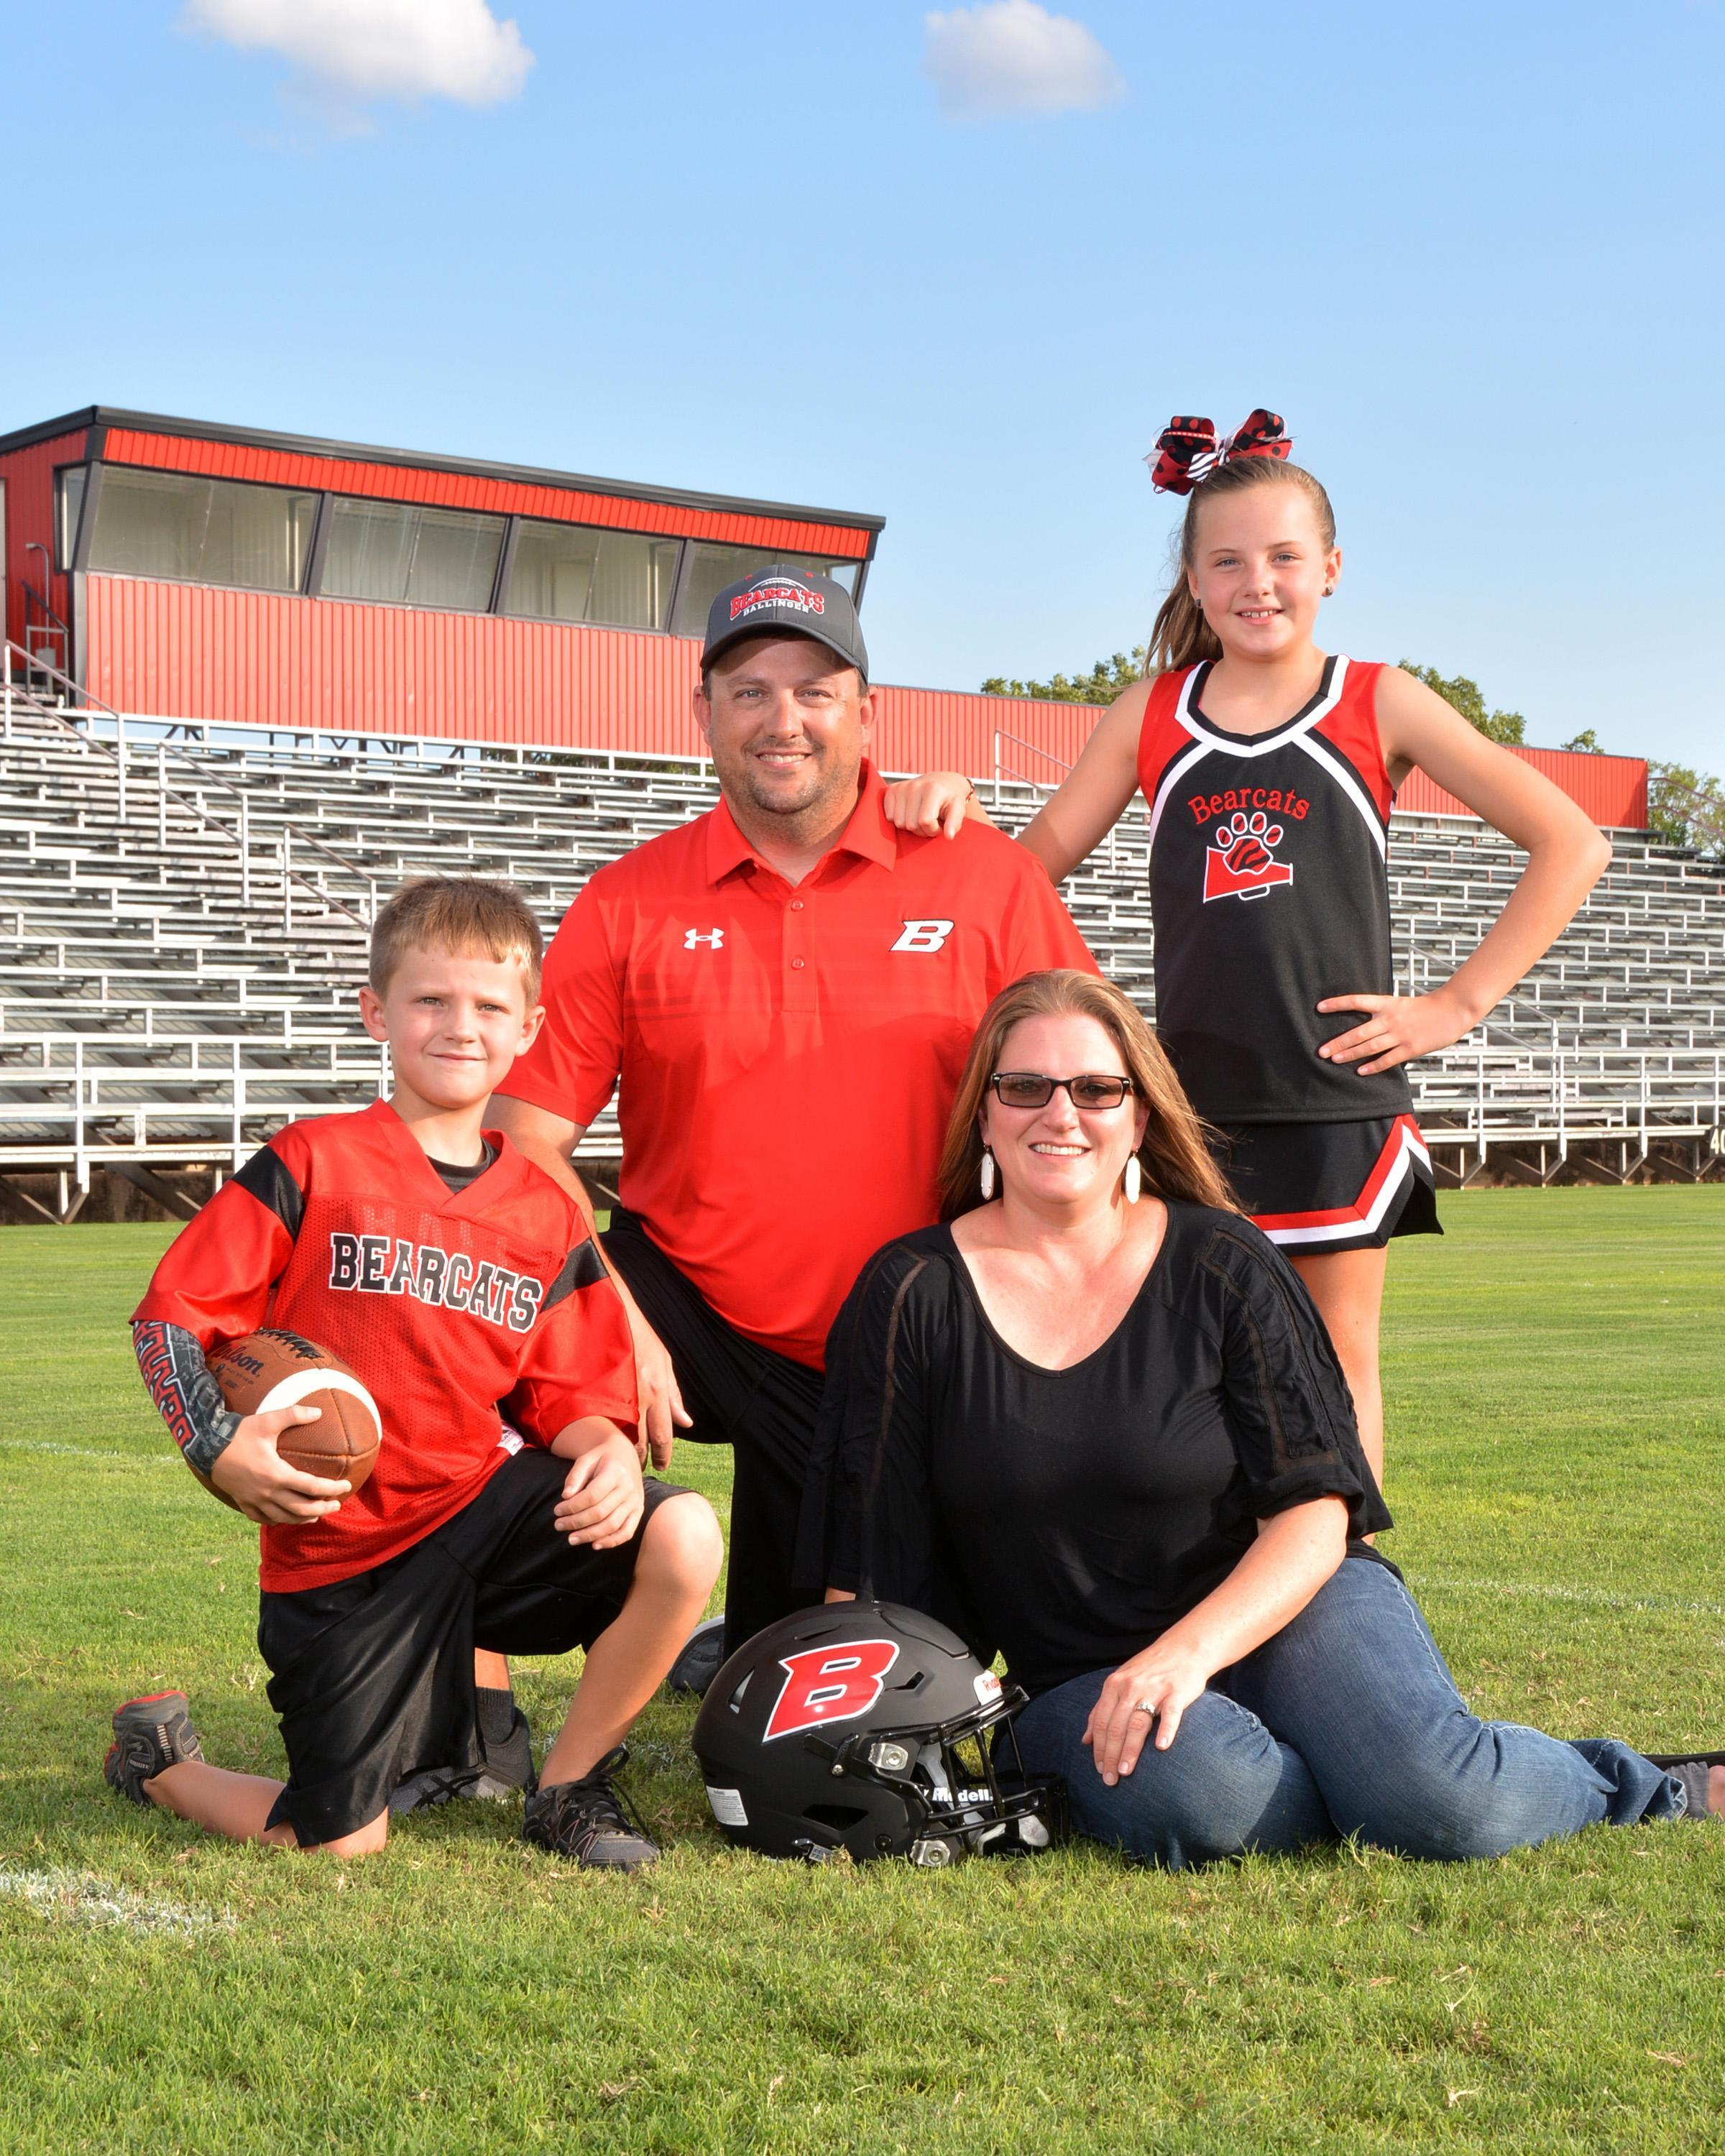 Picture of Coach Wilson's family.